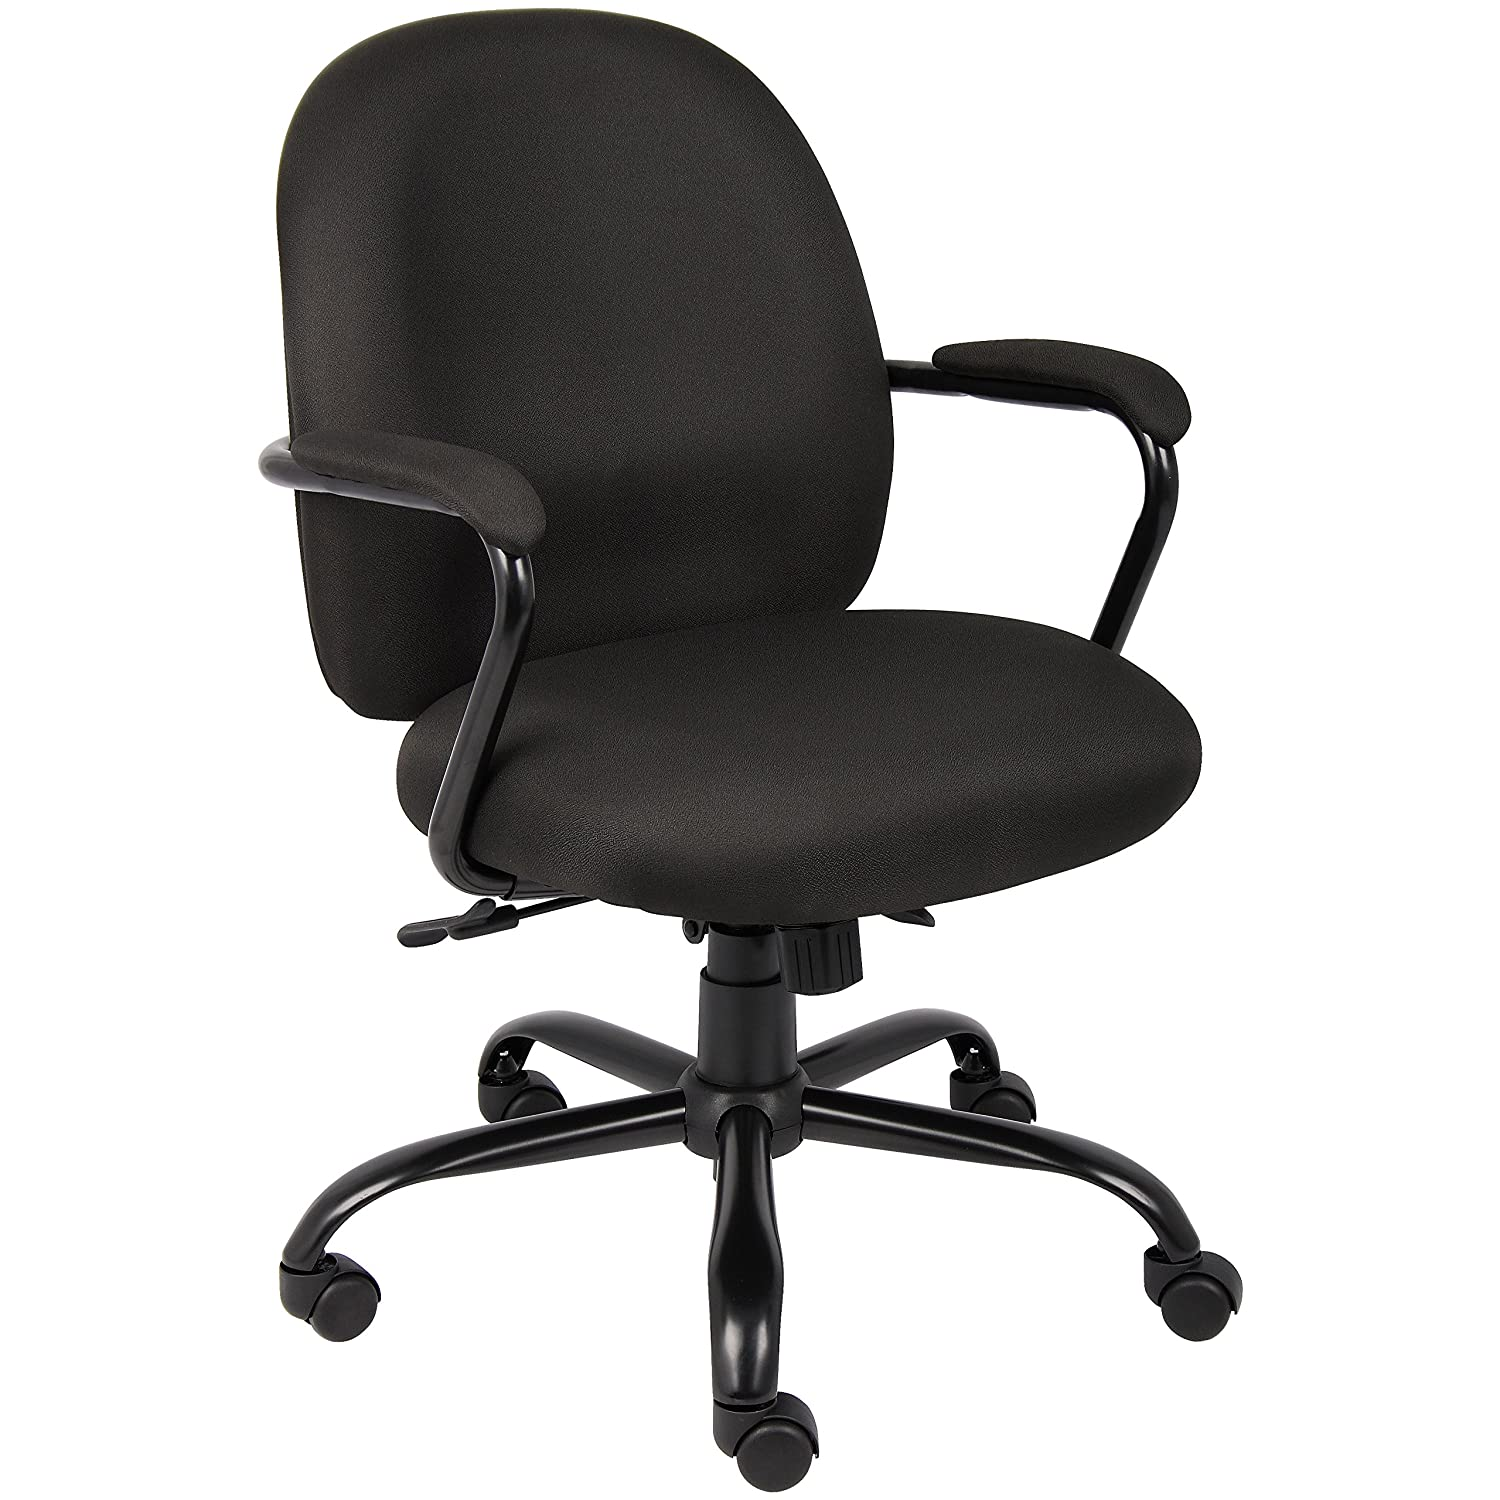 Heavy Duty Office Chair Best Heavy Duty Office Chairs Heavy Duty Office Chair